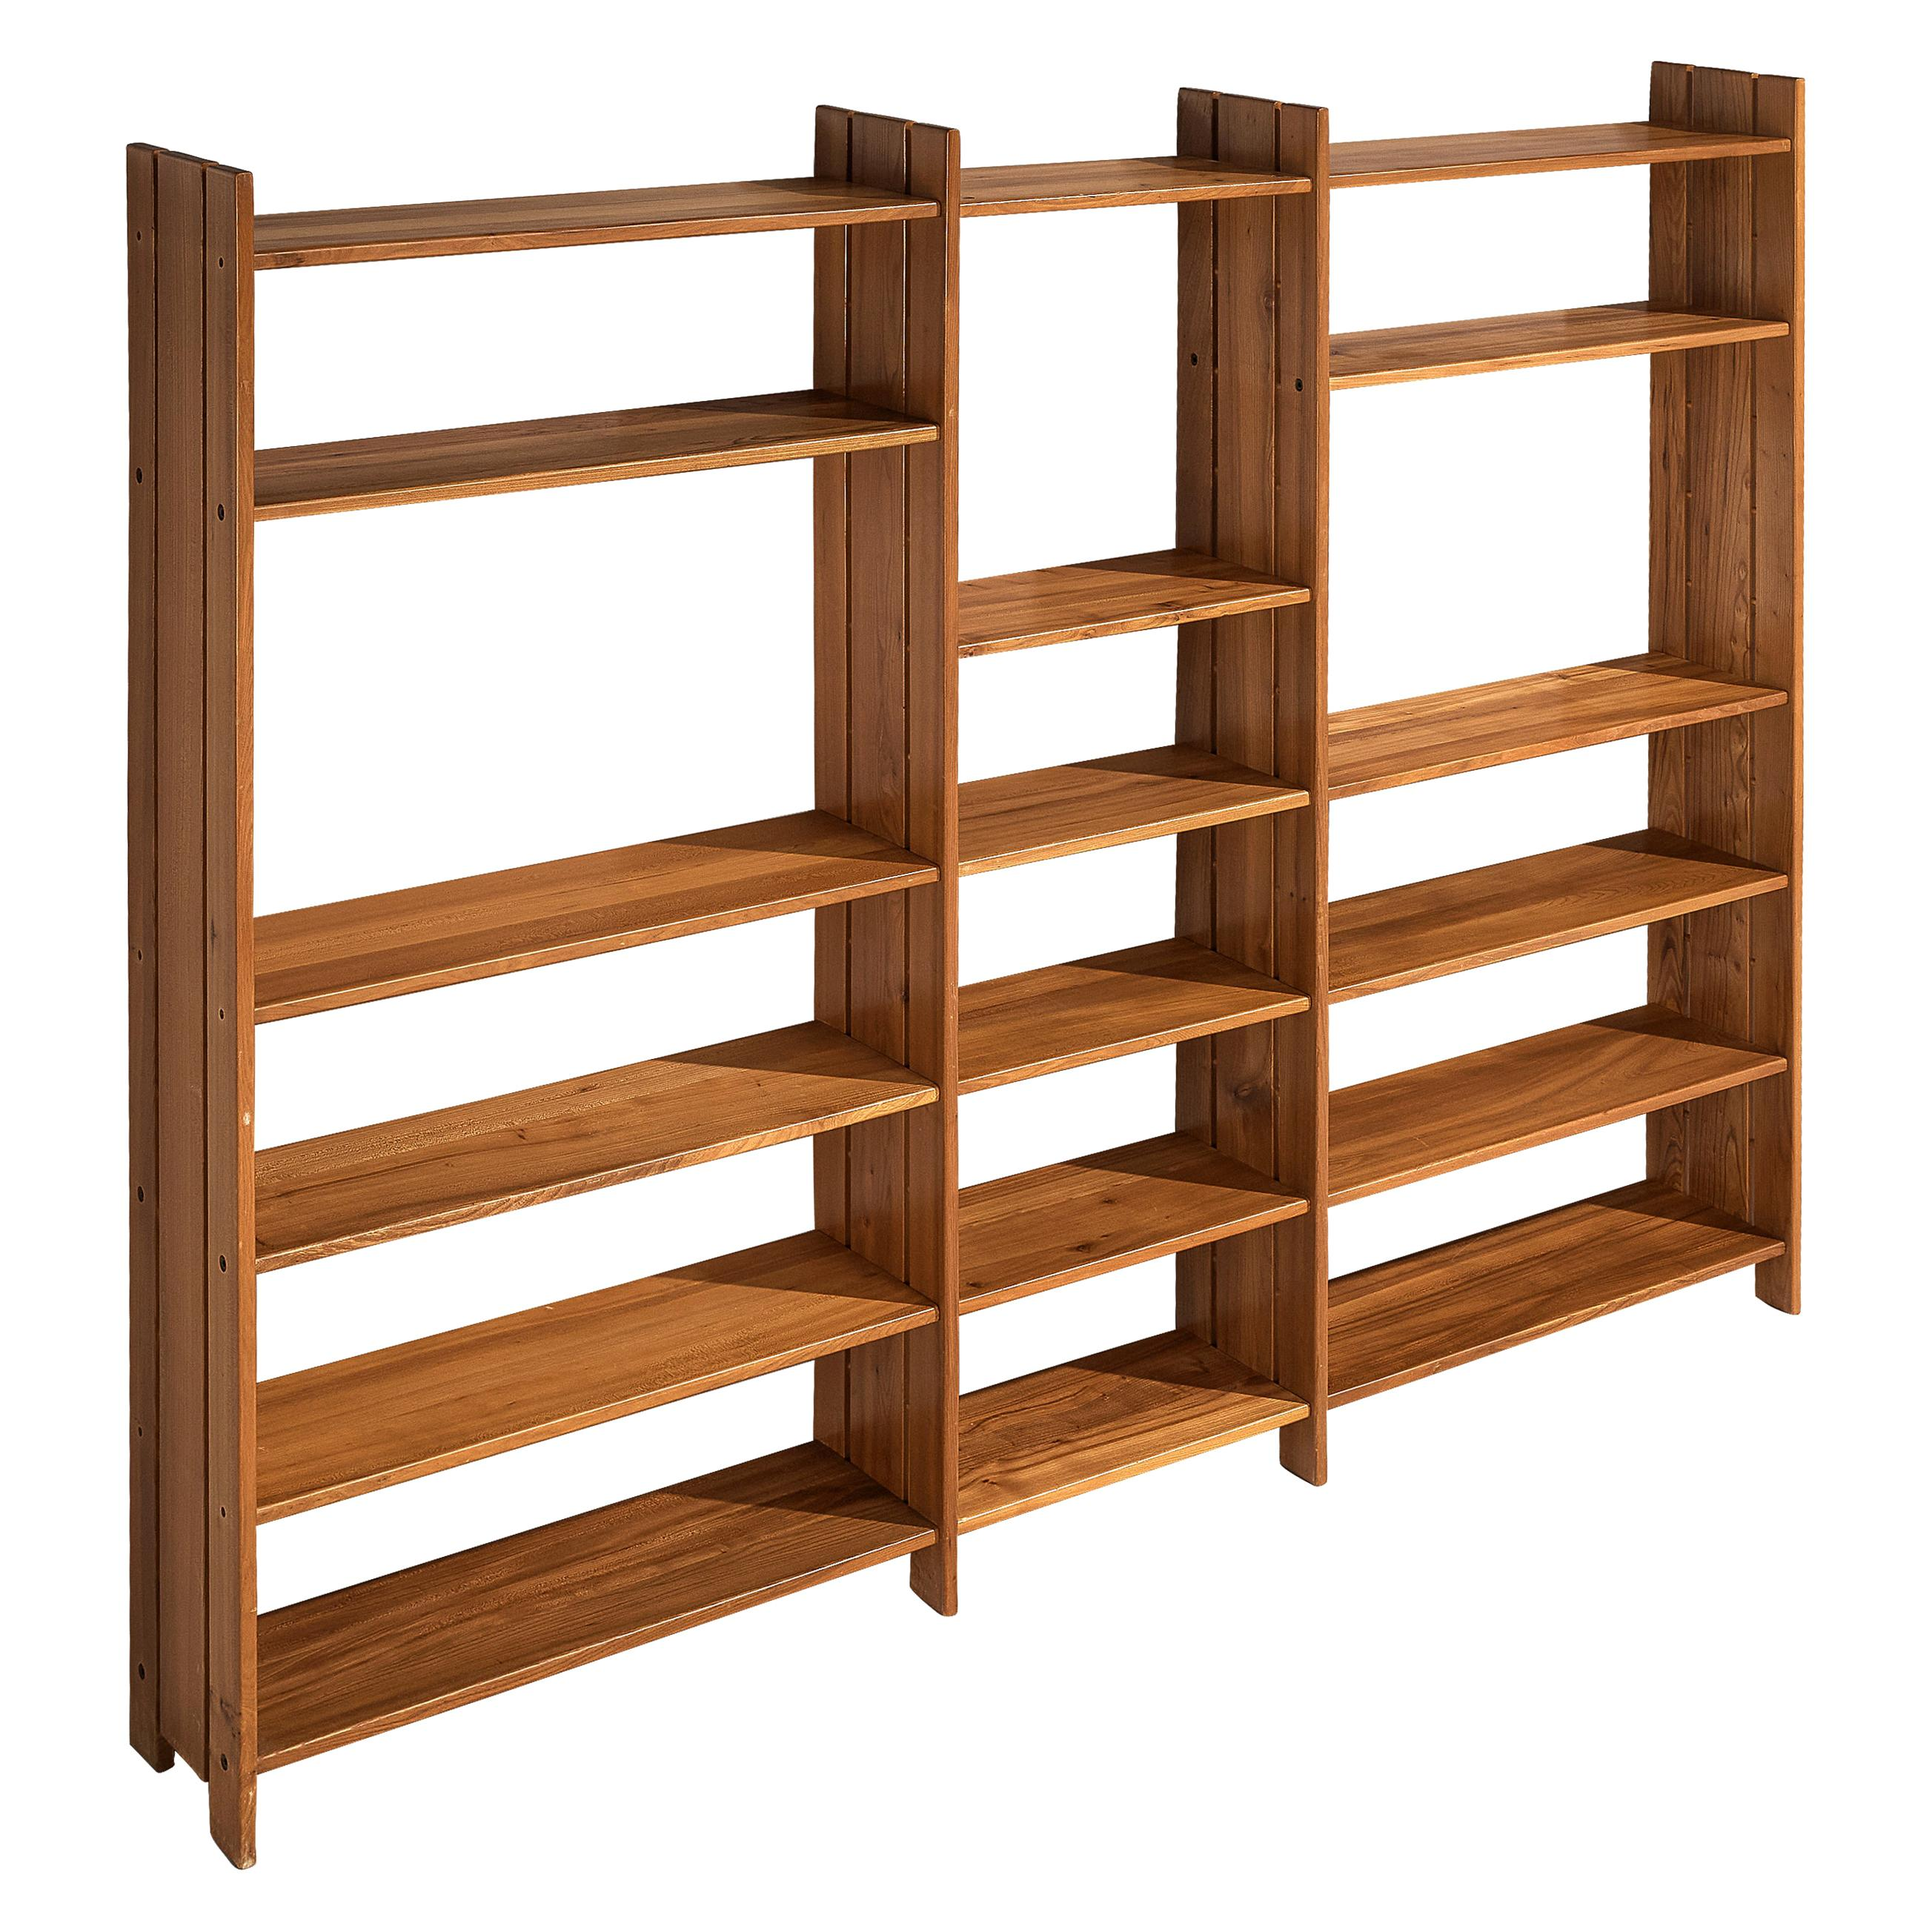 Maison Regain Free-Standing Bookshelf or Room Divider in Solid Elm